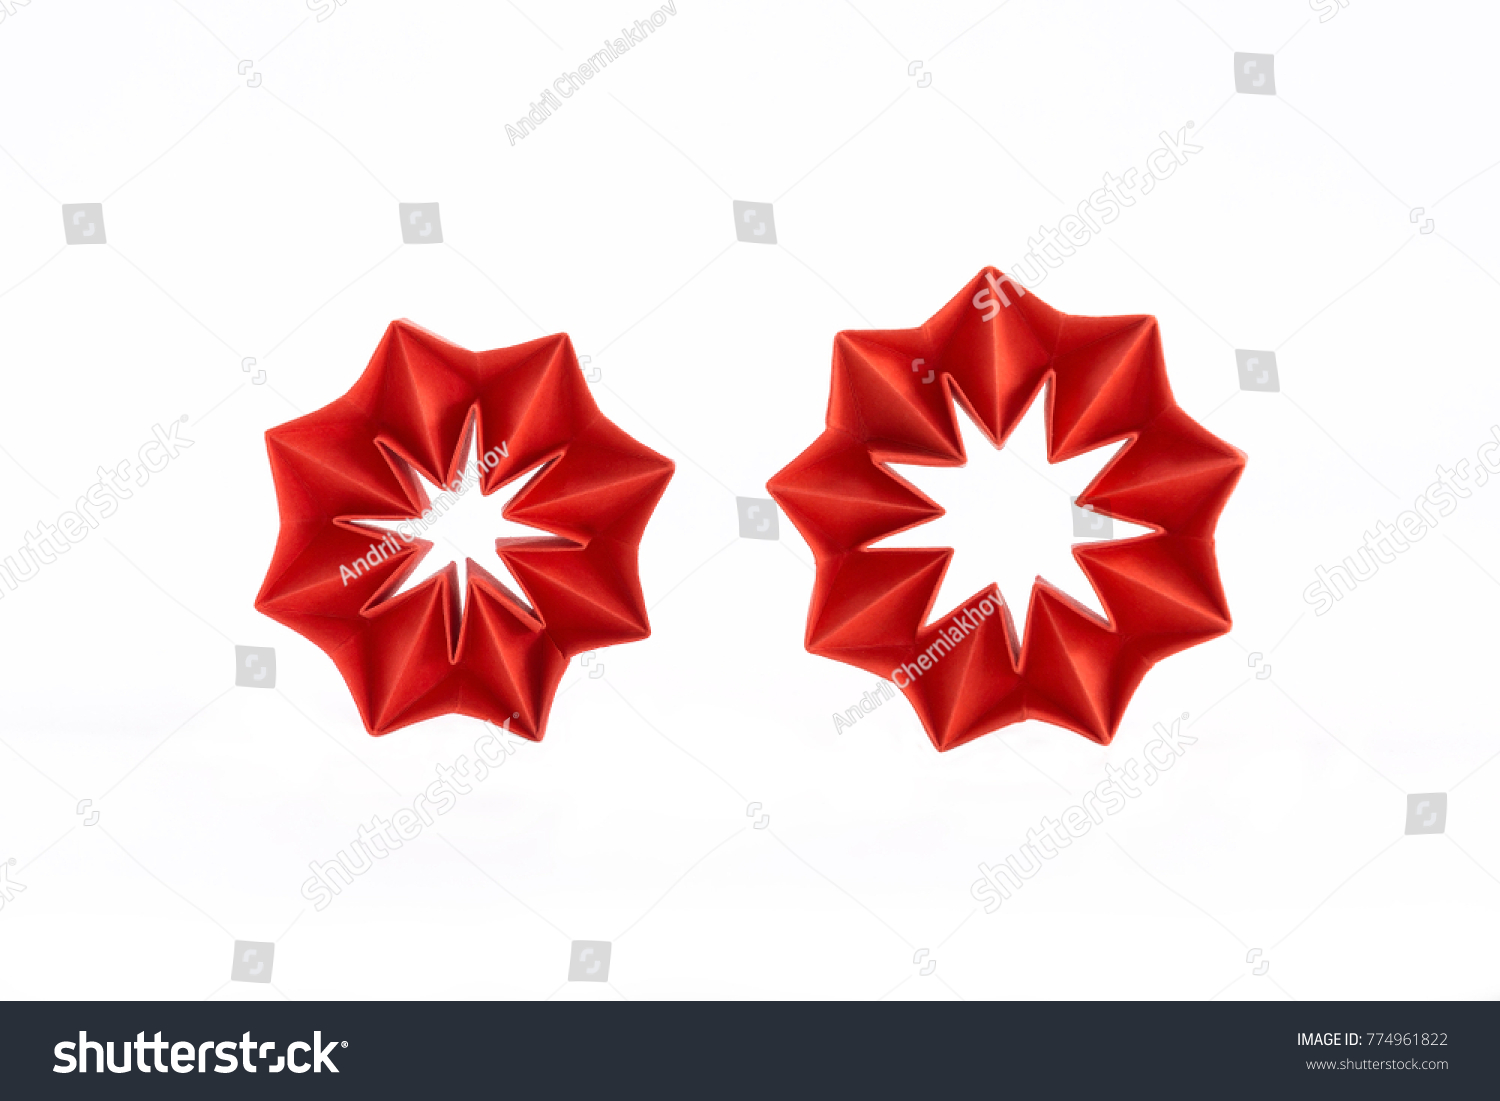 Origami Corrugated Star Christmas Tree Toys Stock Photo Edit Now